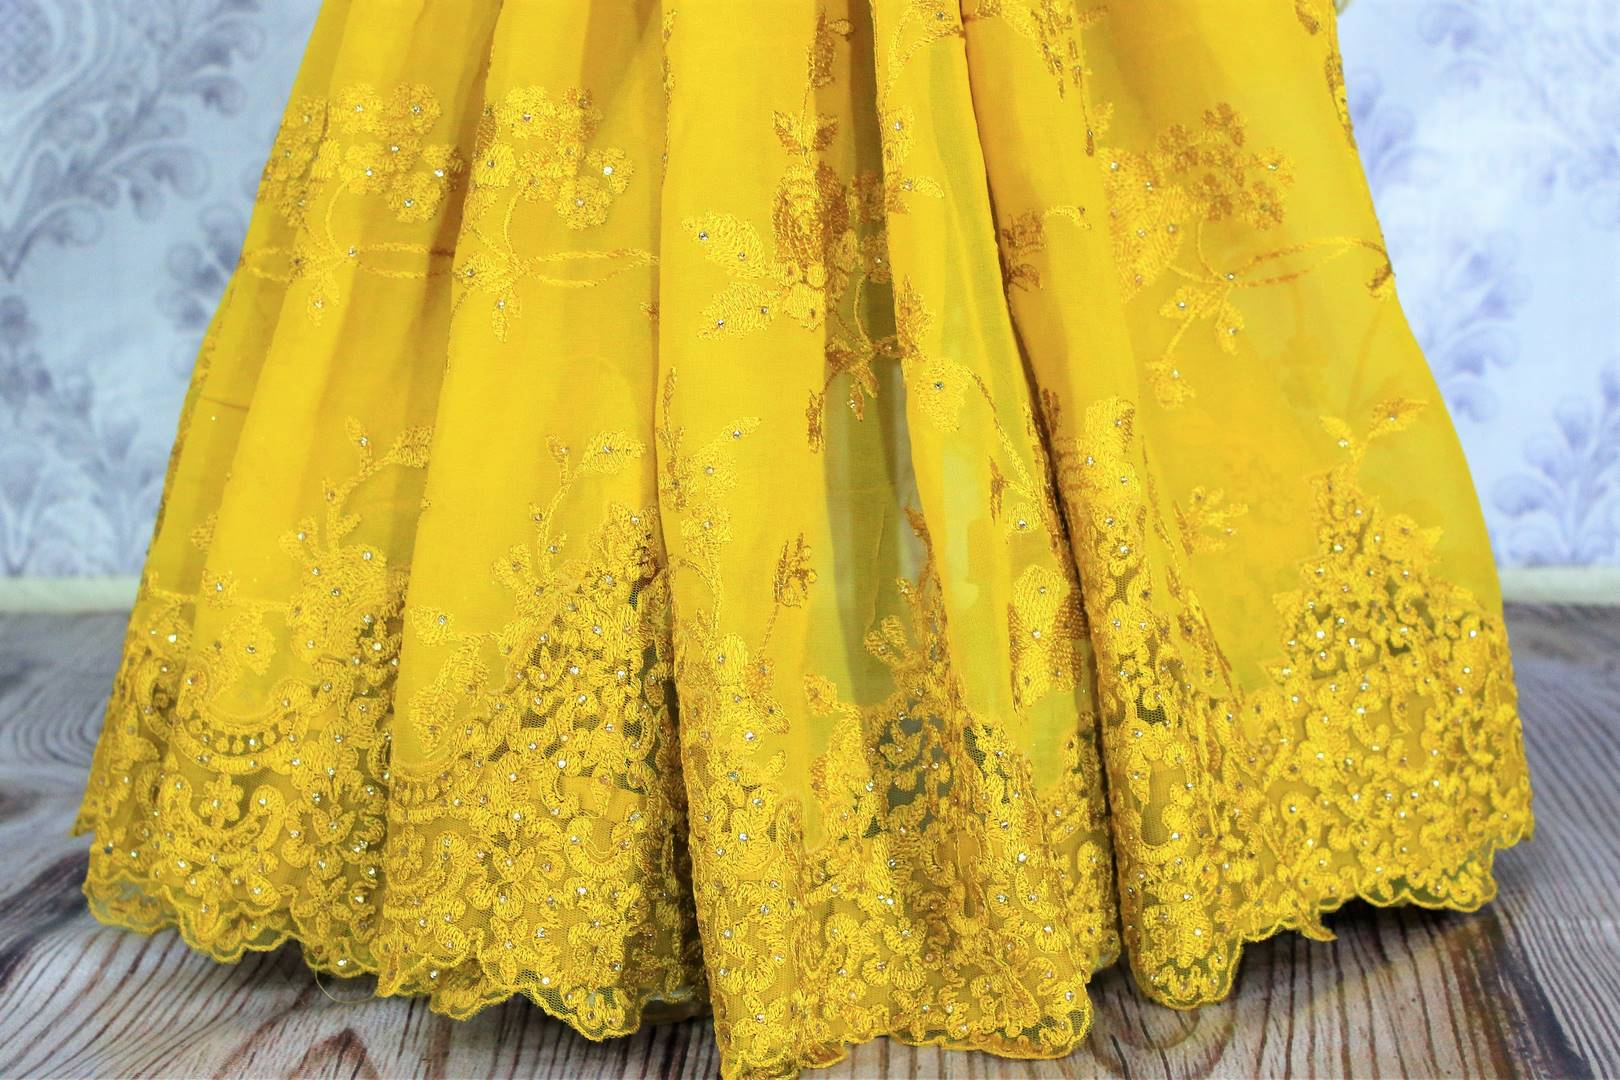 Buy alluring yellow embroidered georgette saree online in USA. Dazzle in this vibrant color saree with delicate embroidery at parties and special occasions. Make your party look special with beautiful Indian designer sarees available at Pure Elegance Indian clothing store in USA or shop online.-pleats